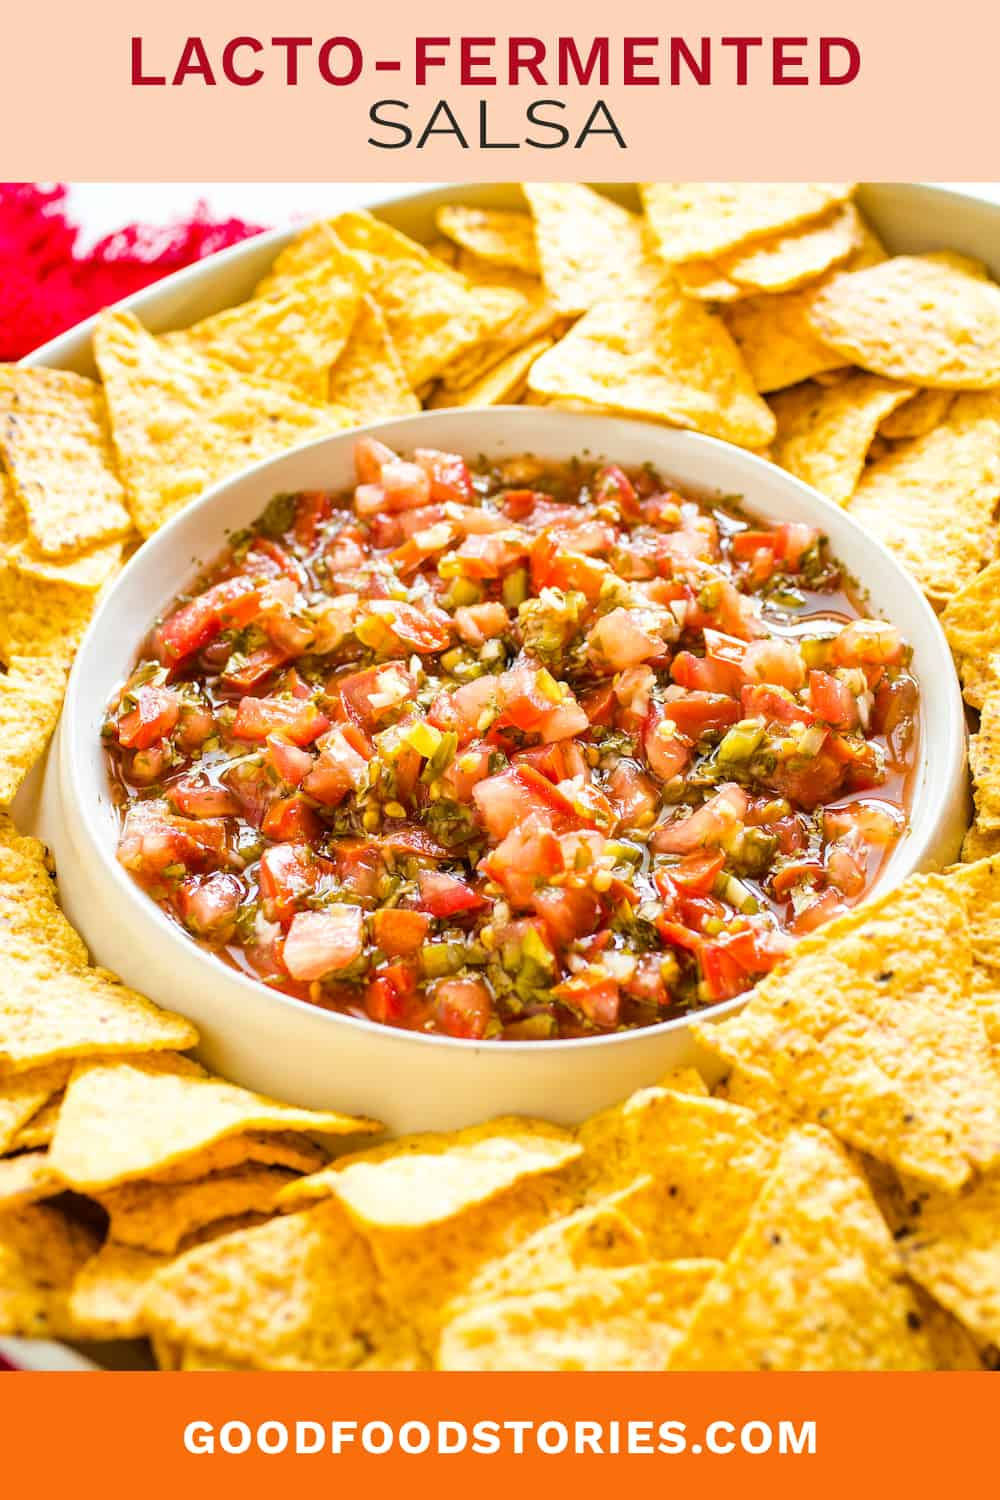 lacto-fermented salsa and chips